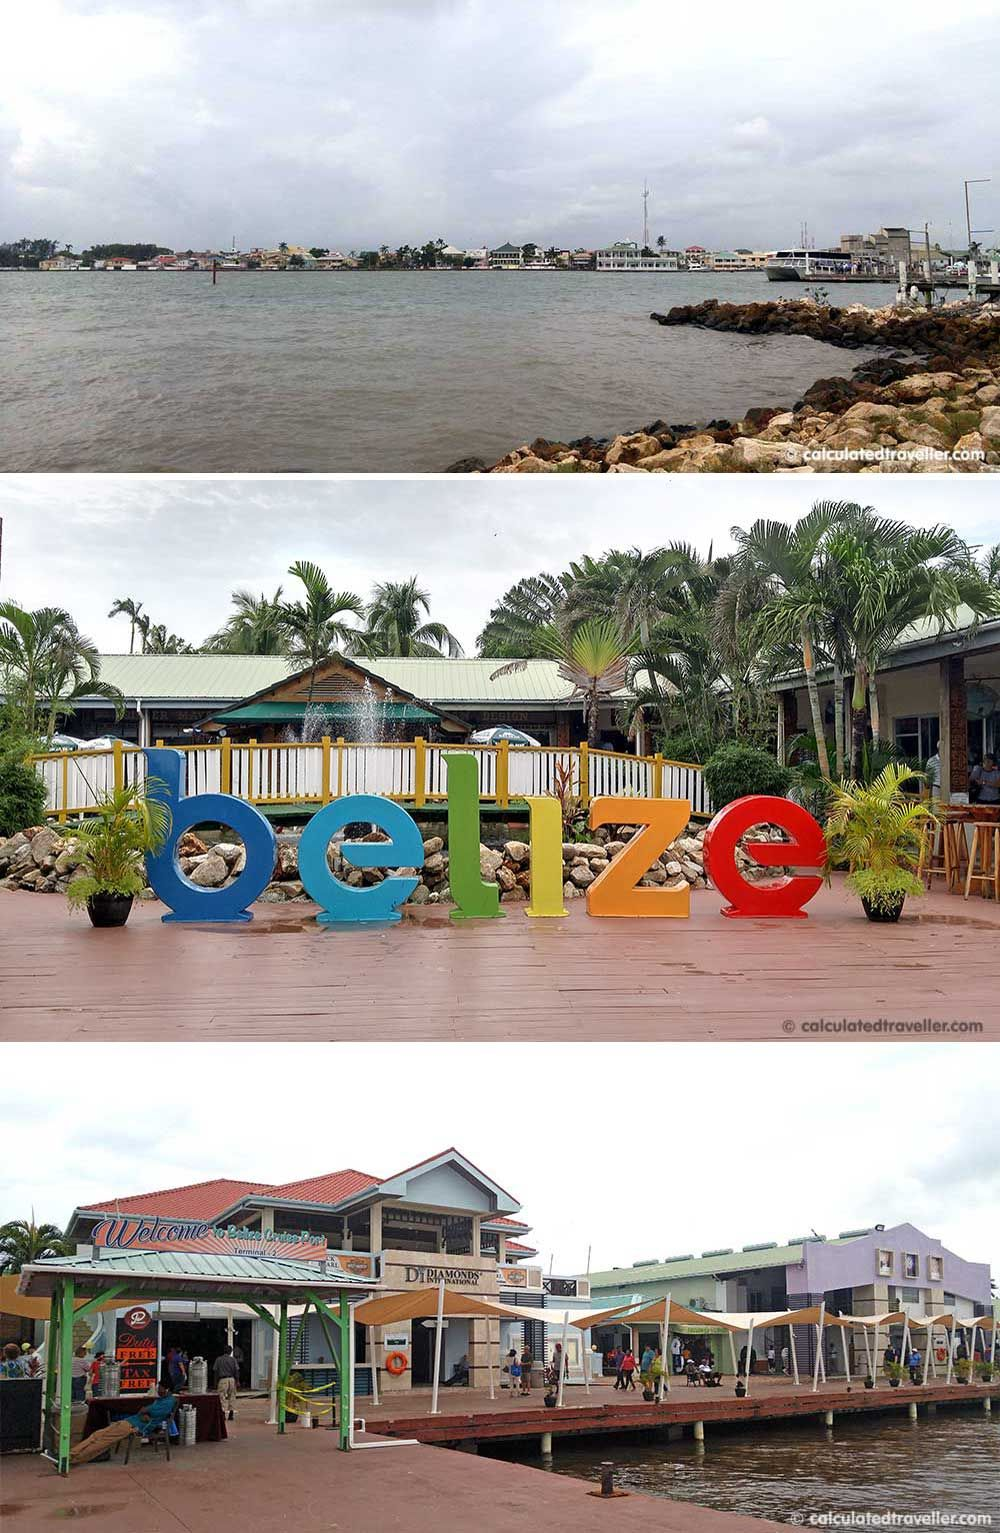 One Relaxing Day Spent Exploring The Belize Cruise Port Belize Cruise Belize Cruise Port Cruise Port